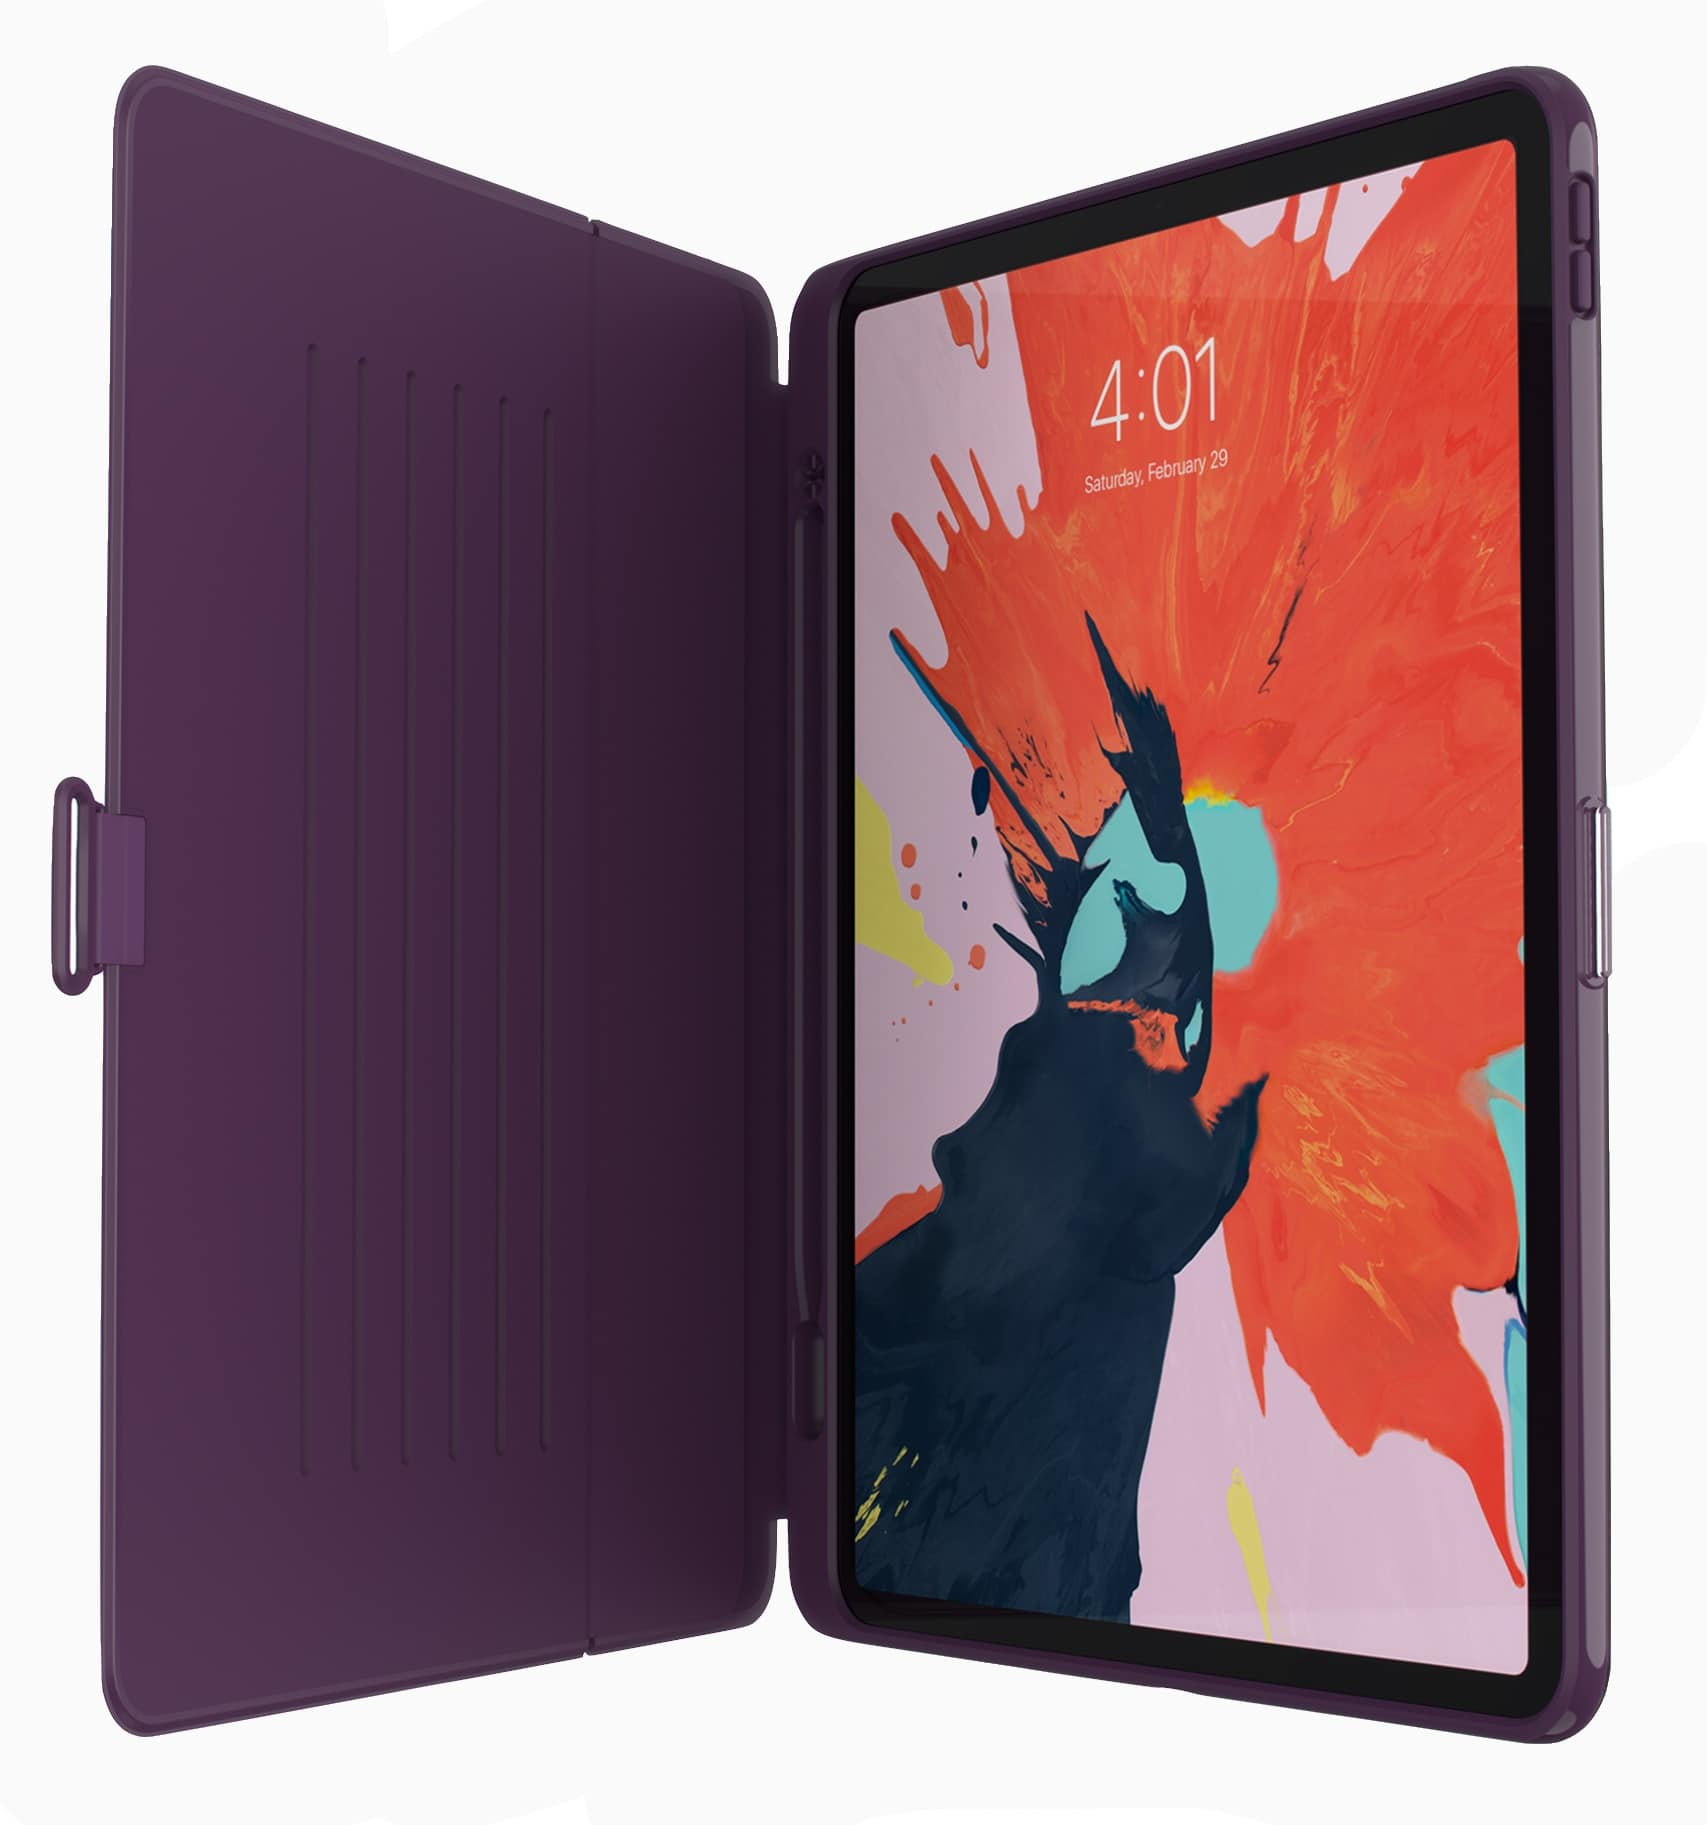 low priced f28a8 70c3f Speck folio case protects 2018 iPad Pro from 6-foot drops | Cult of Mac